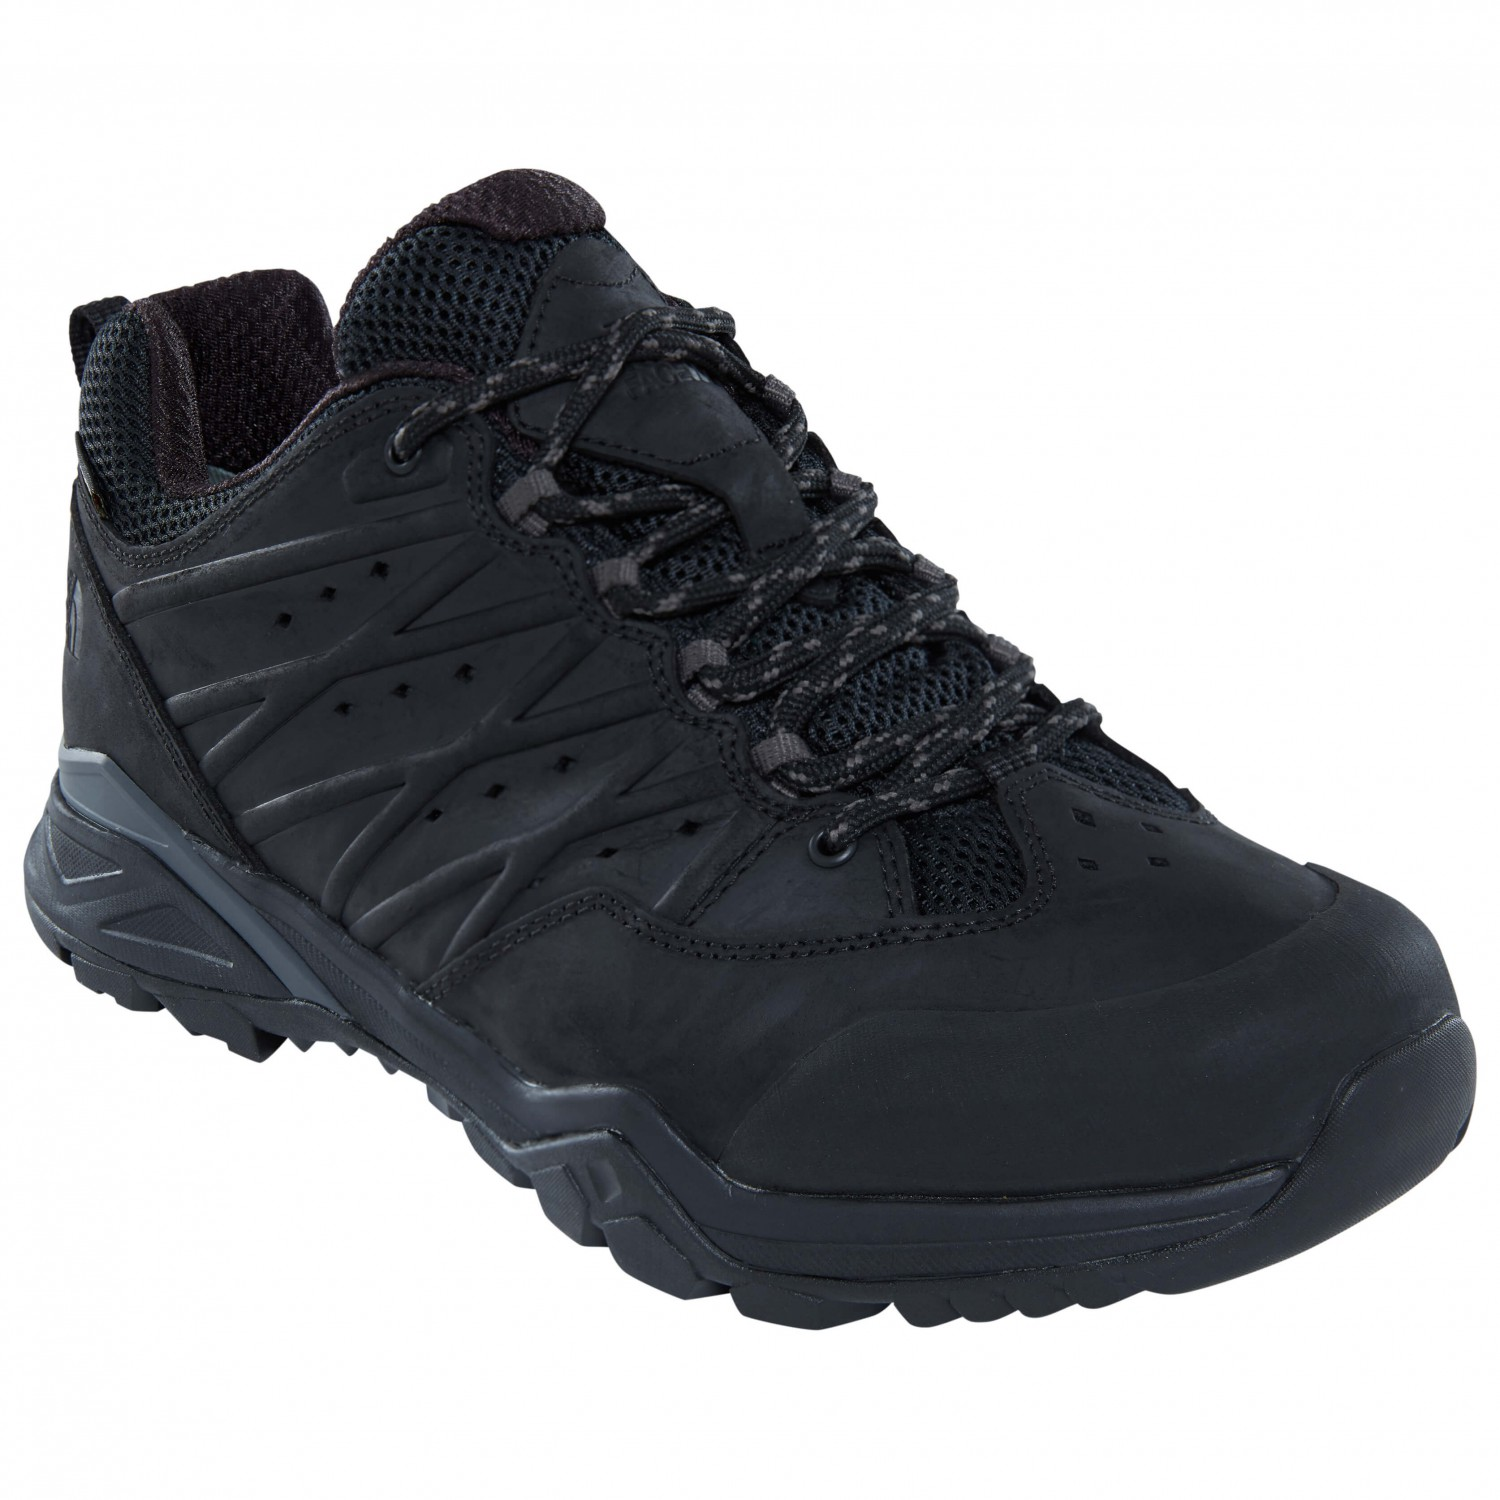 The North Face - Hedgehog Hike GTX II - Multisportschuhe TNF Black / Graphite Grey